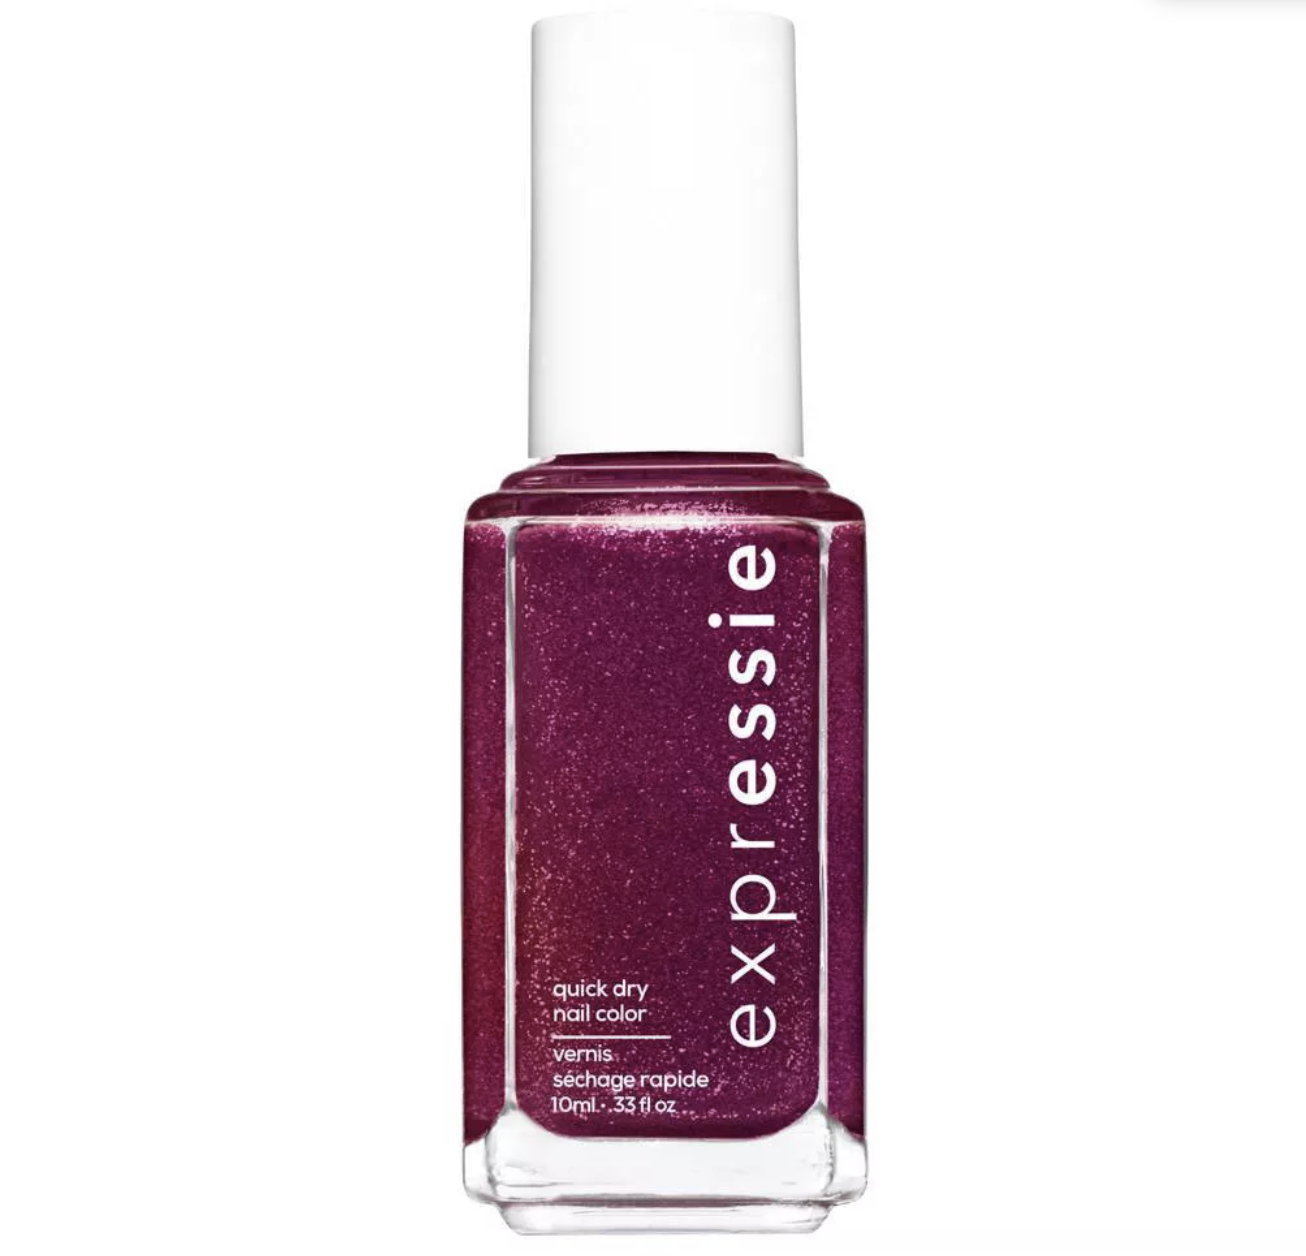 Essie Launches New Expressie Quick Drying Nail Polish